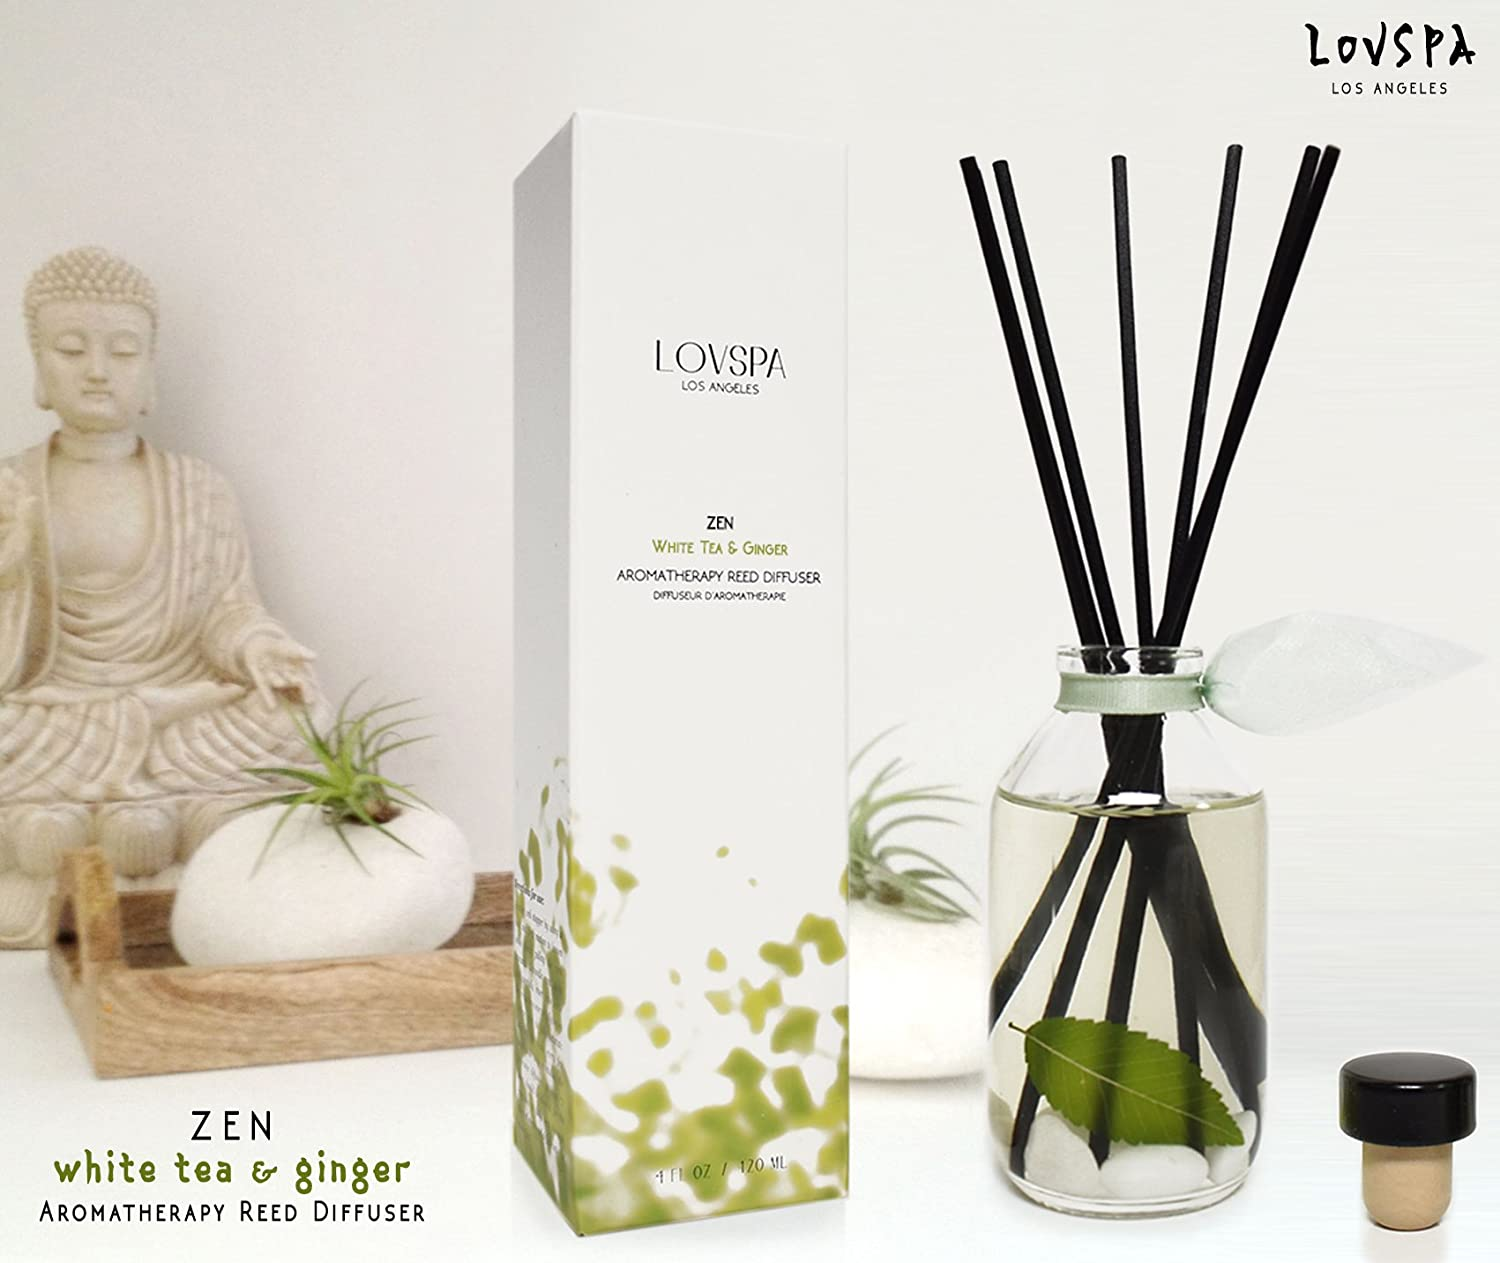 LOVSPA Zen White Tea and Ginger Aromatherapy Reed Diffuser - Tranquil & Serene - with Citrus, Peony, Lavender, Geranium, Sandalwood & Musk - Best Gift Idea! Vegan. Made in The USA